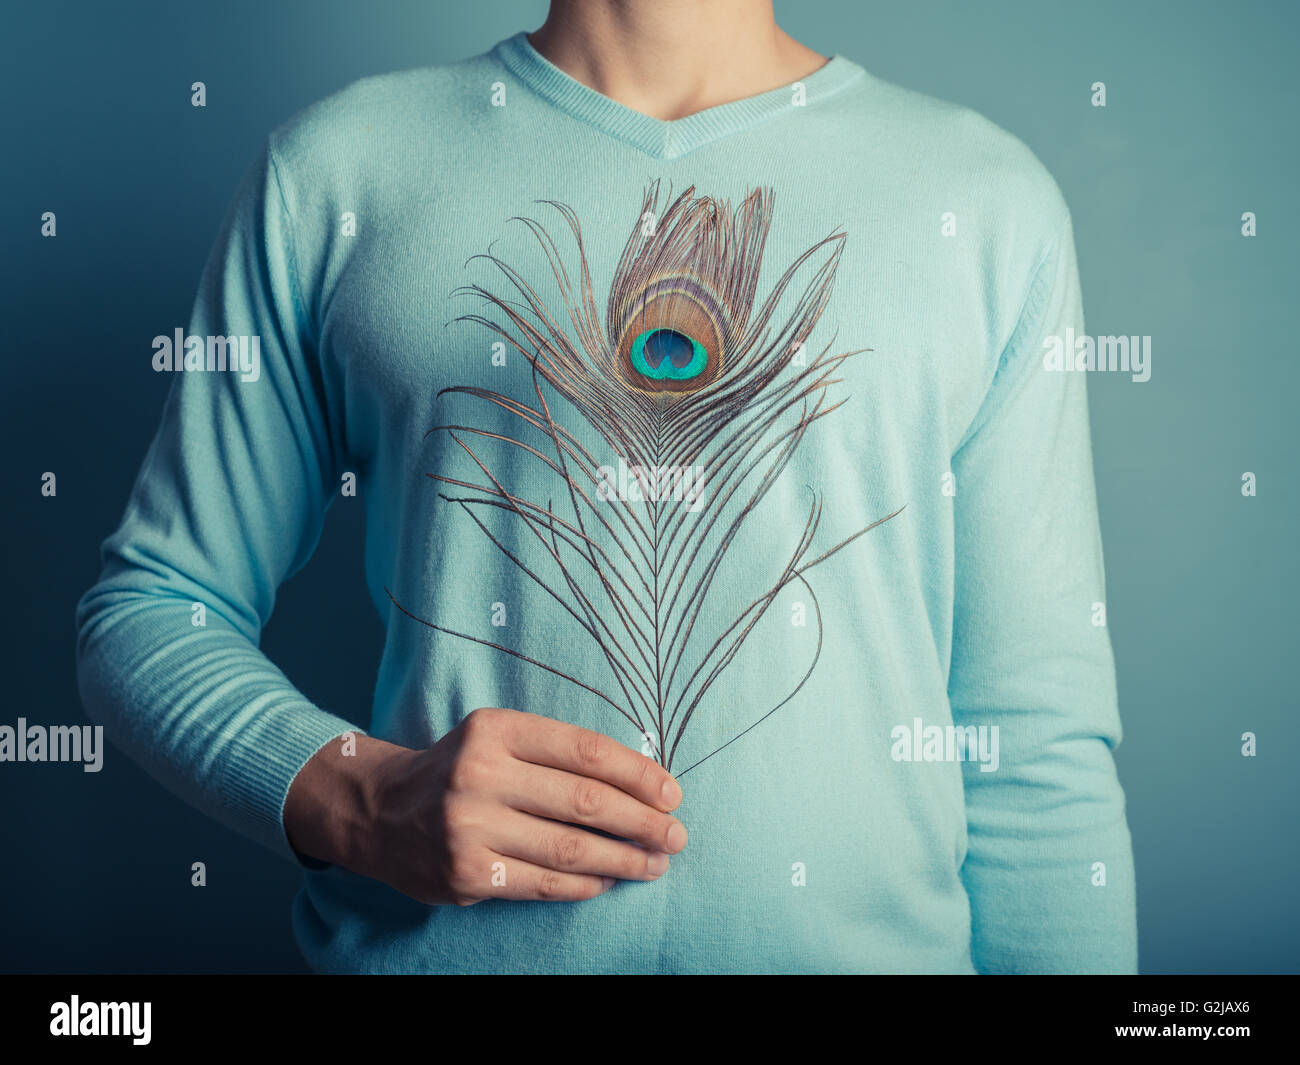 A young man is holding a pretty peacock feather - Stock Image